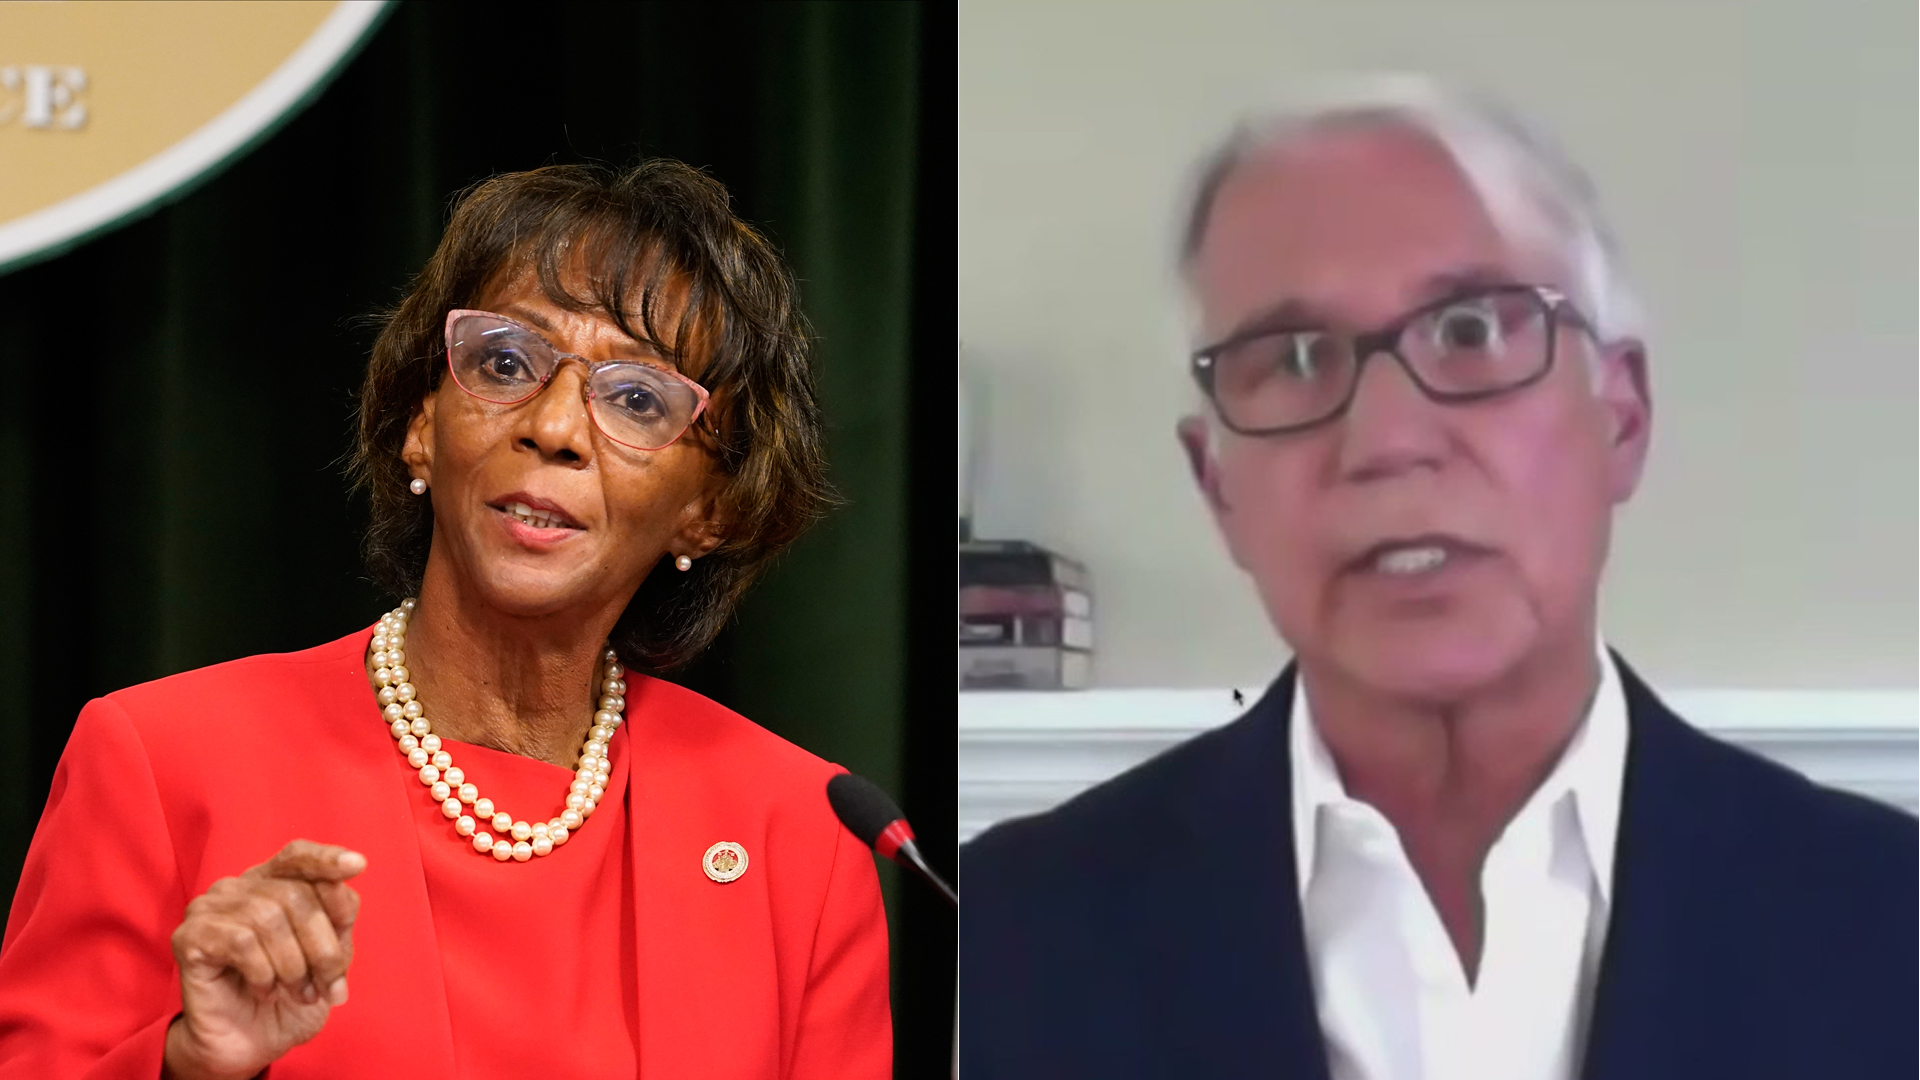 Jackie Lacey concedes in the Los Angeles County District Attorney's Office race, while George Gascón declares victory in a virtual news conference on Nov. 6, 2020. (Damian Dovarganes/Associated Press, KTLA)